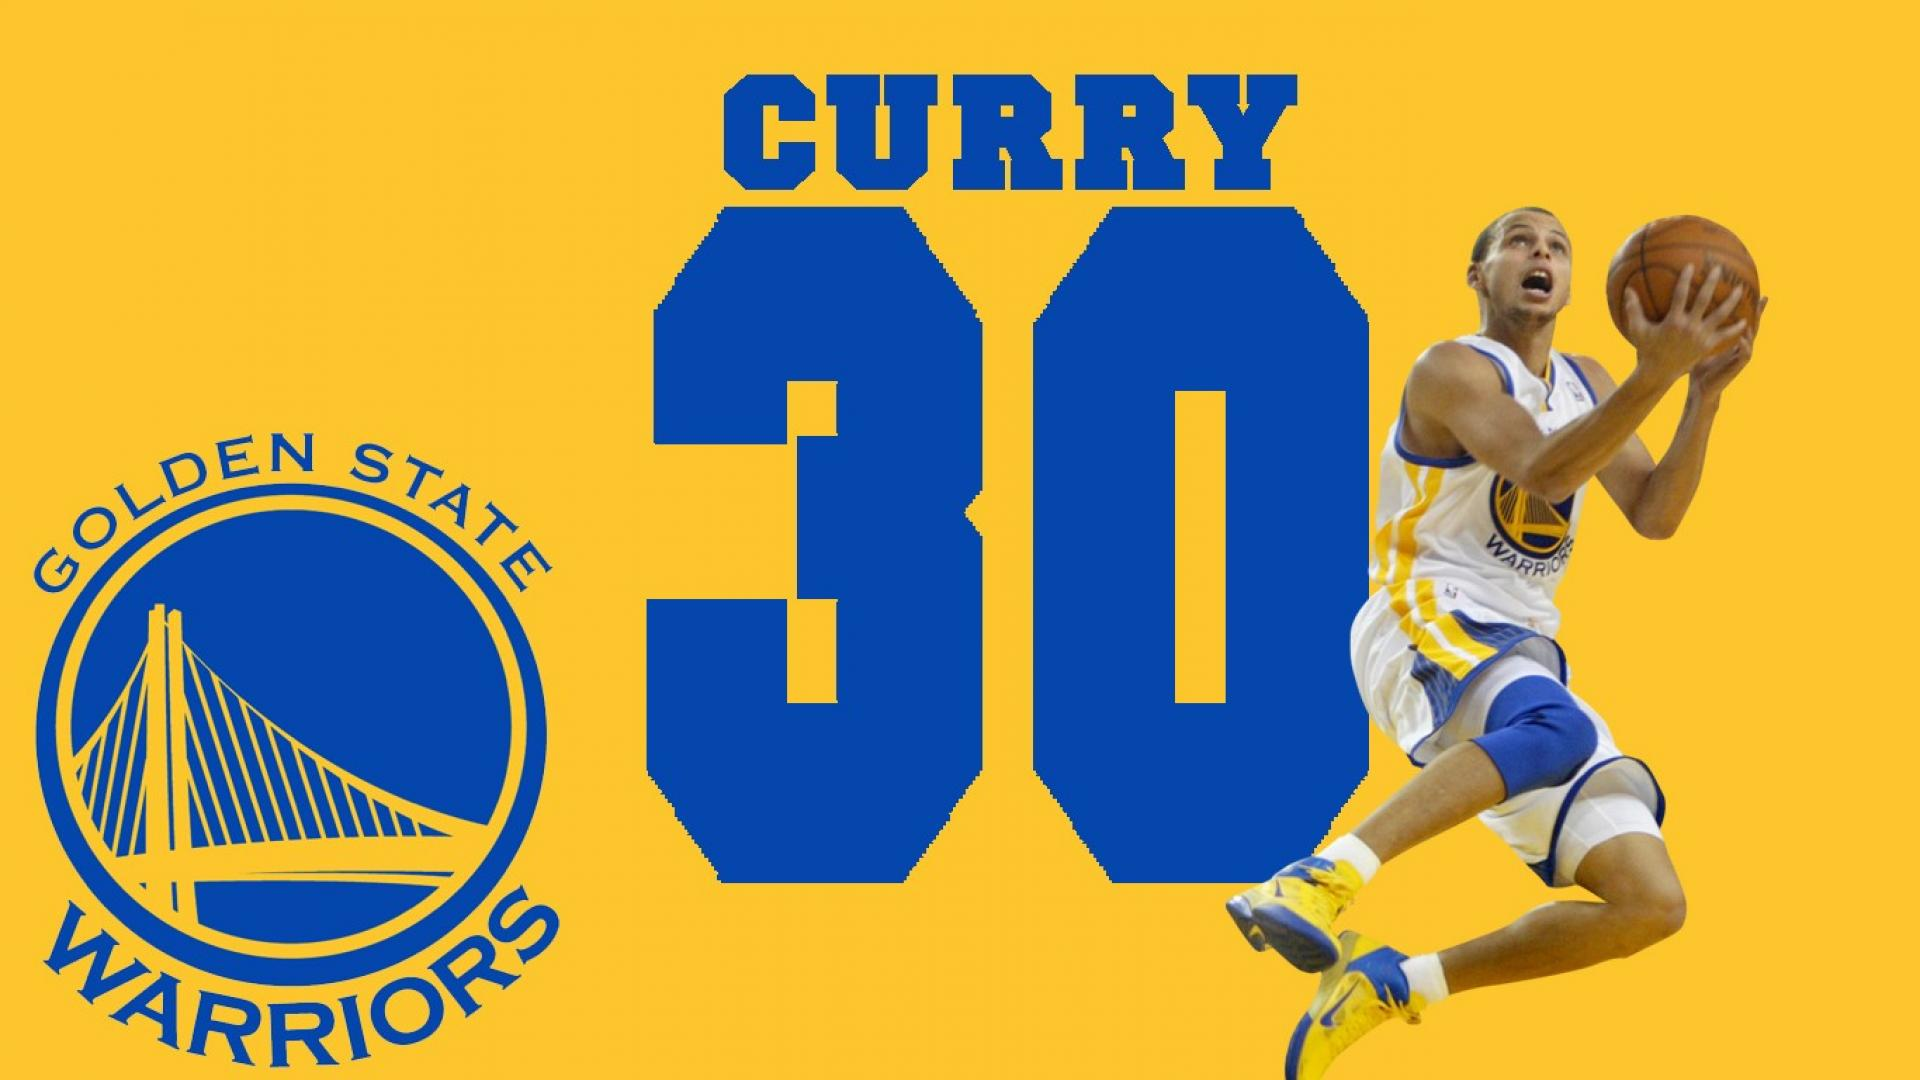 Golden state warriors wallpaper 86125 1920x1080